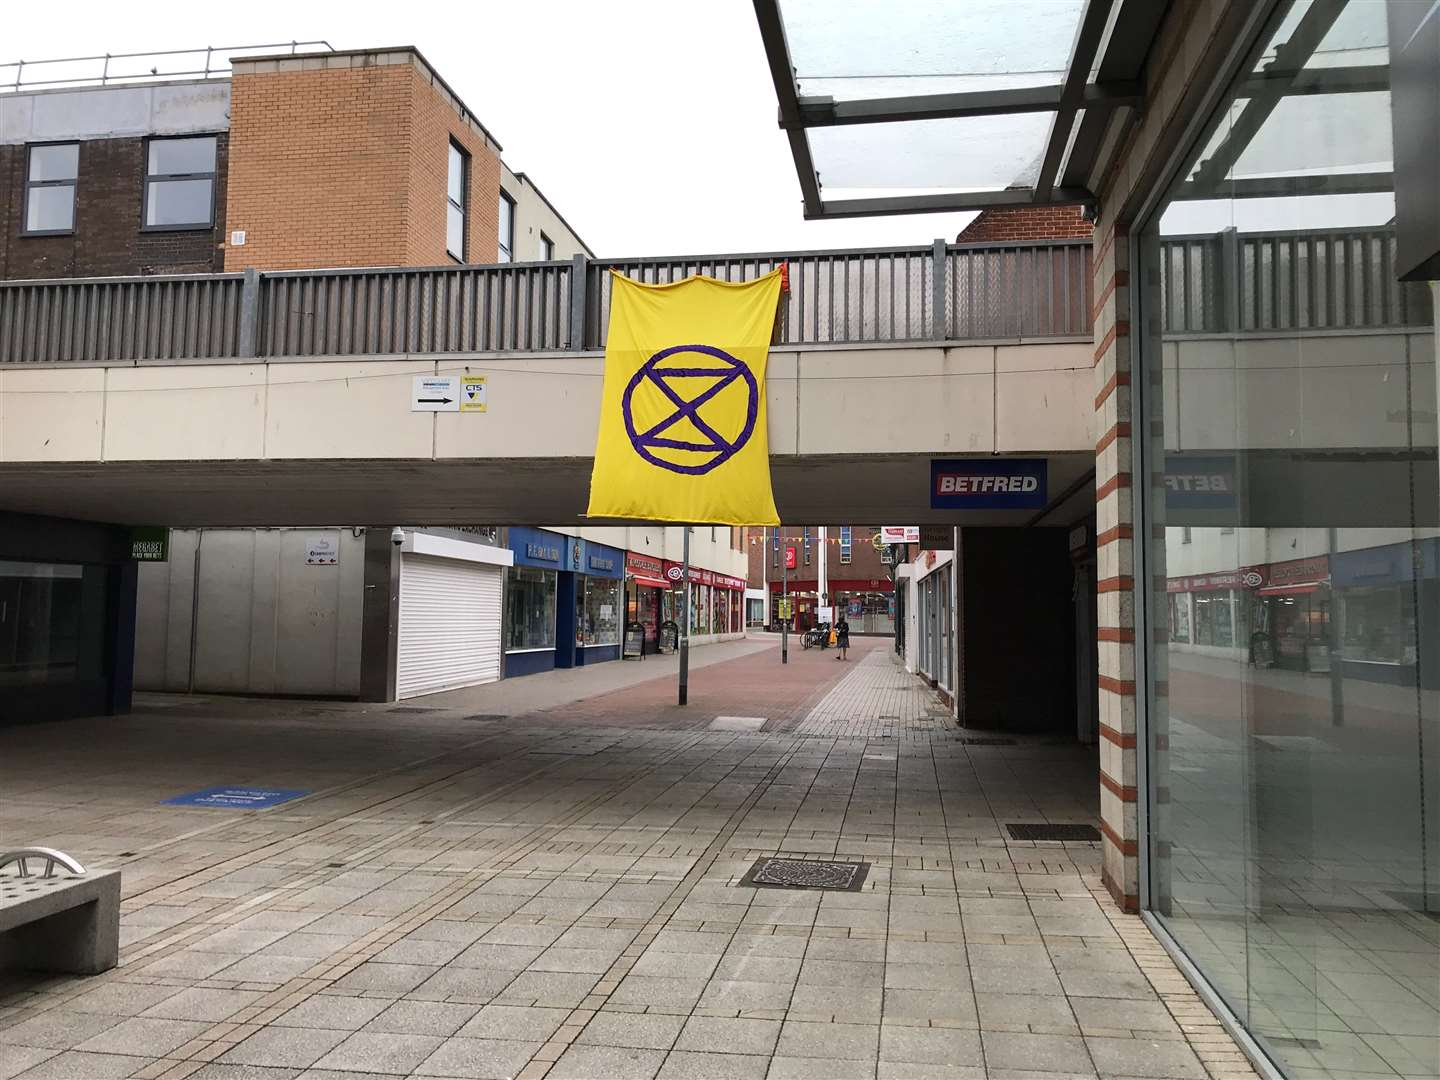 Extinction Rebellion activists hope this banner in the heart of Lynn will inspire others to protest about climate change (42211895)